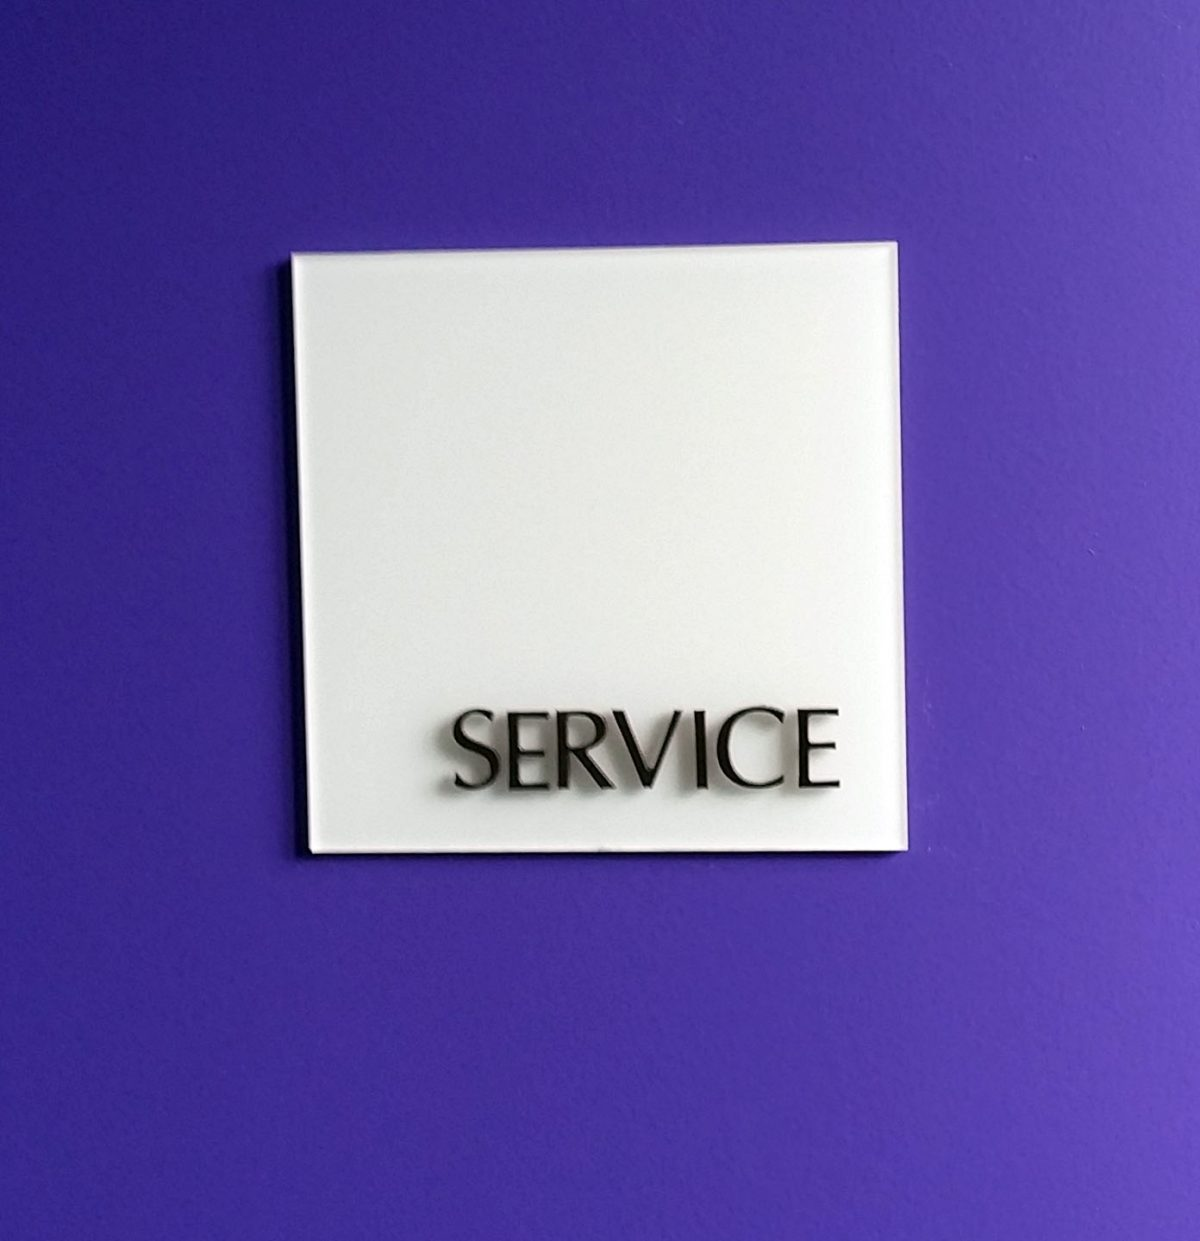 signaletique-hotel-collection-geneve-5